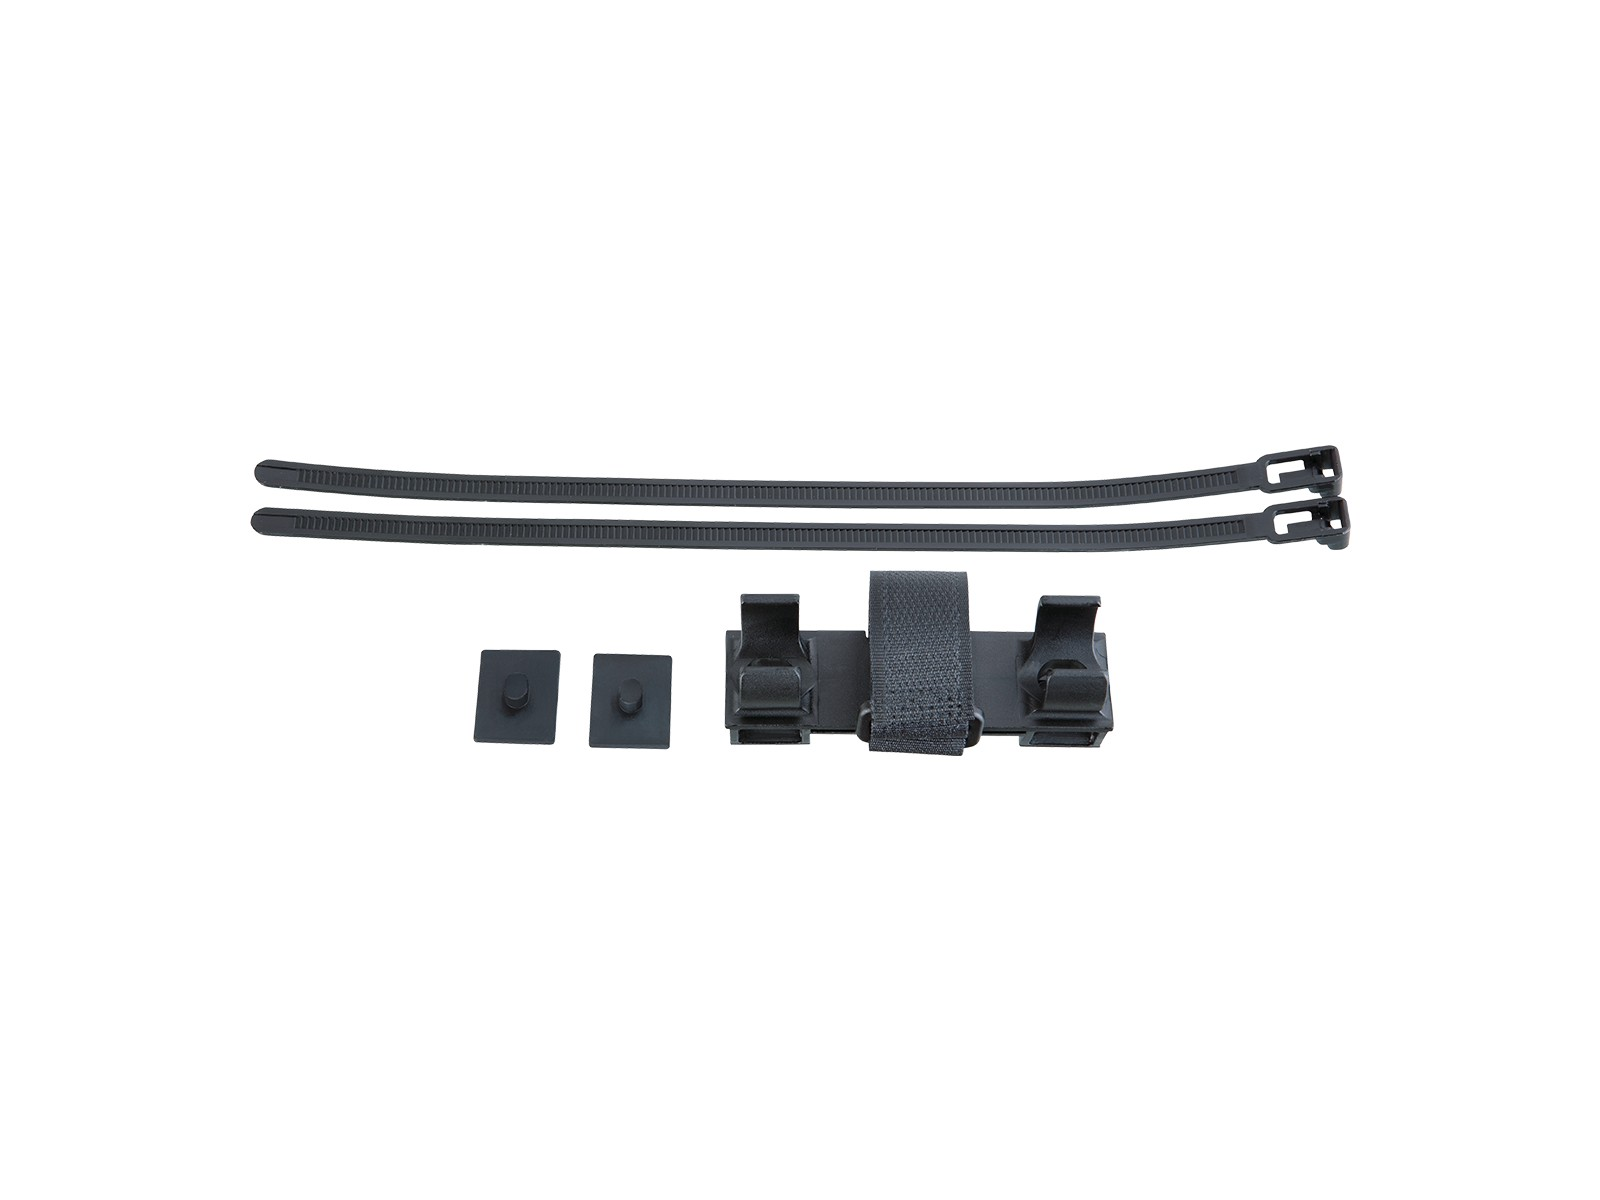 Inline Mounting Bracket For Mini Morph, Road Morph and Road Morph with Gauge